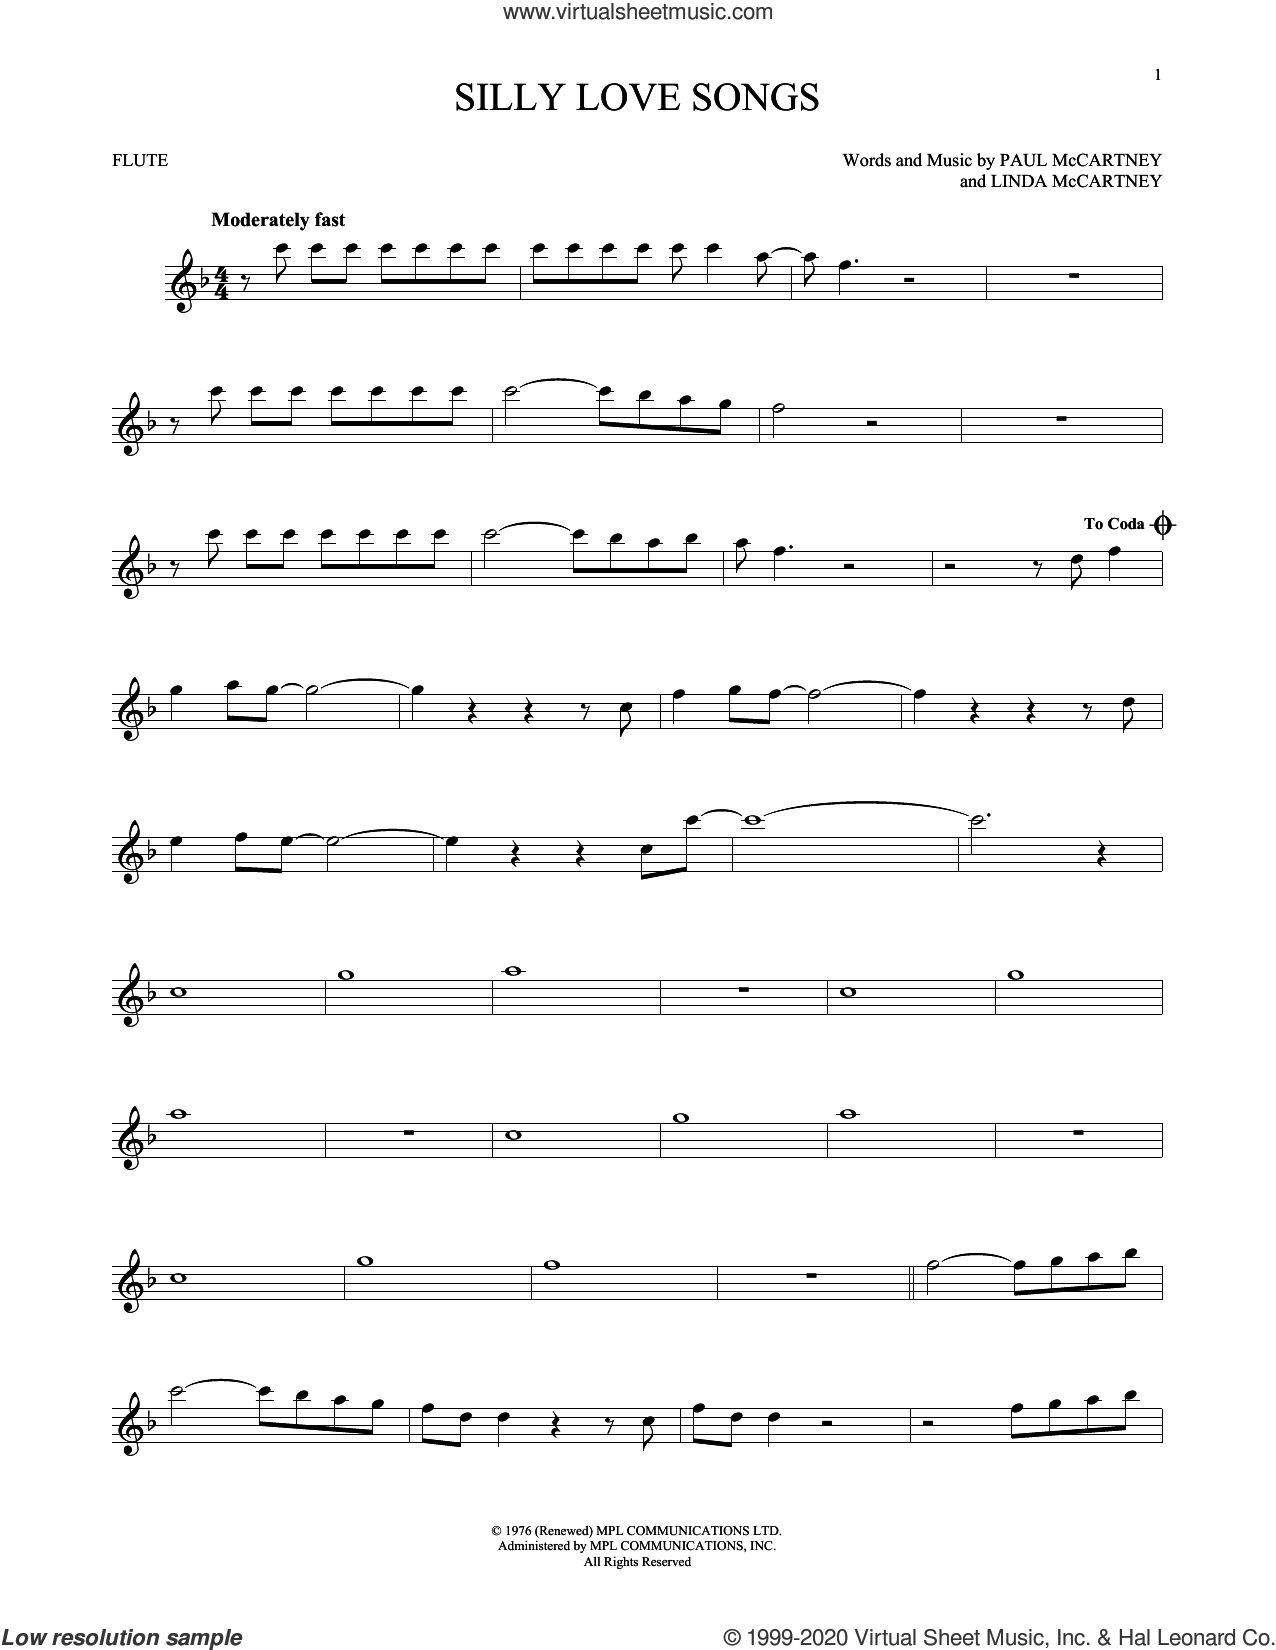 Silly Love Songs sheet music for flute solo by Wings, Linda McCartney and Paul McCartney, intermediate skill level